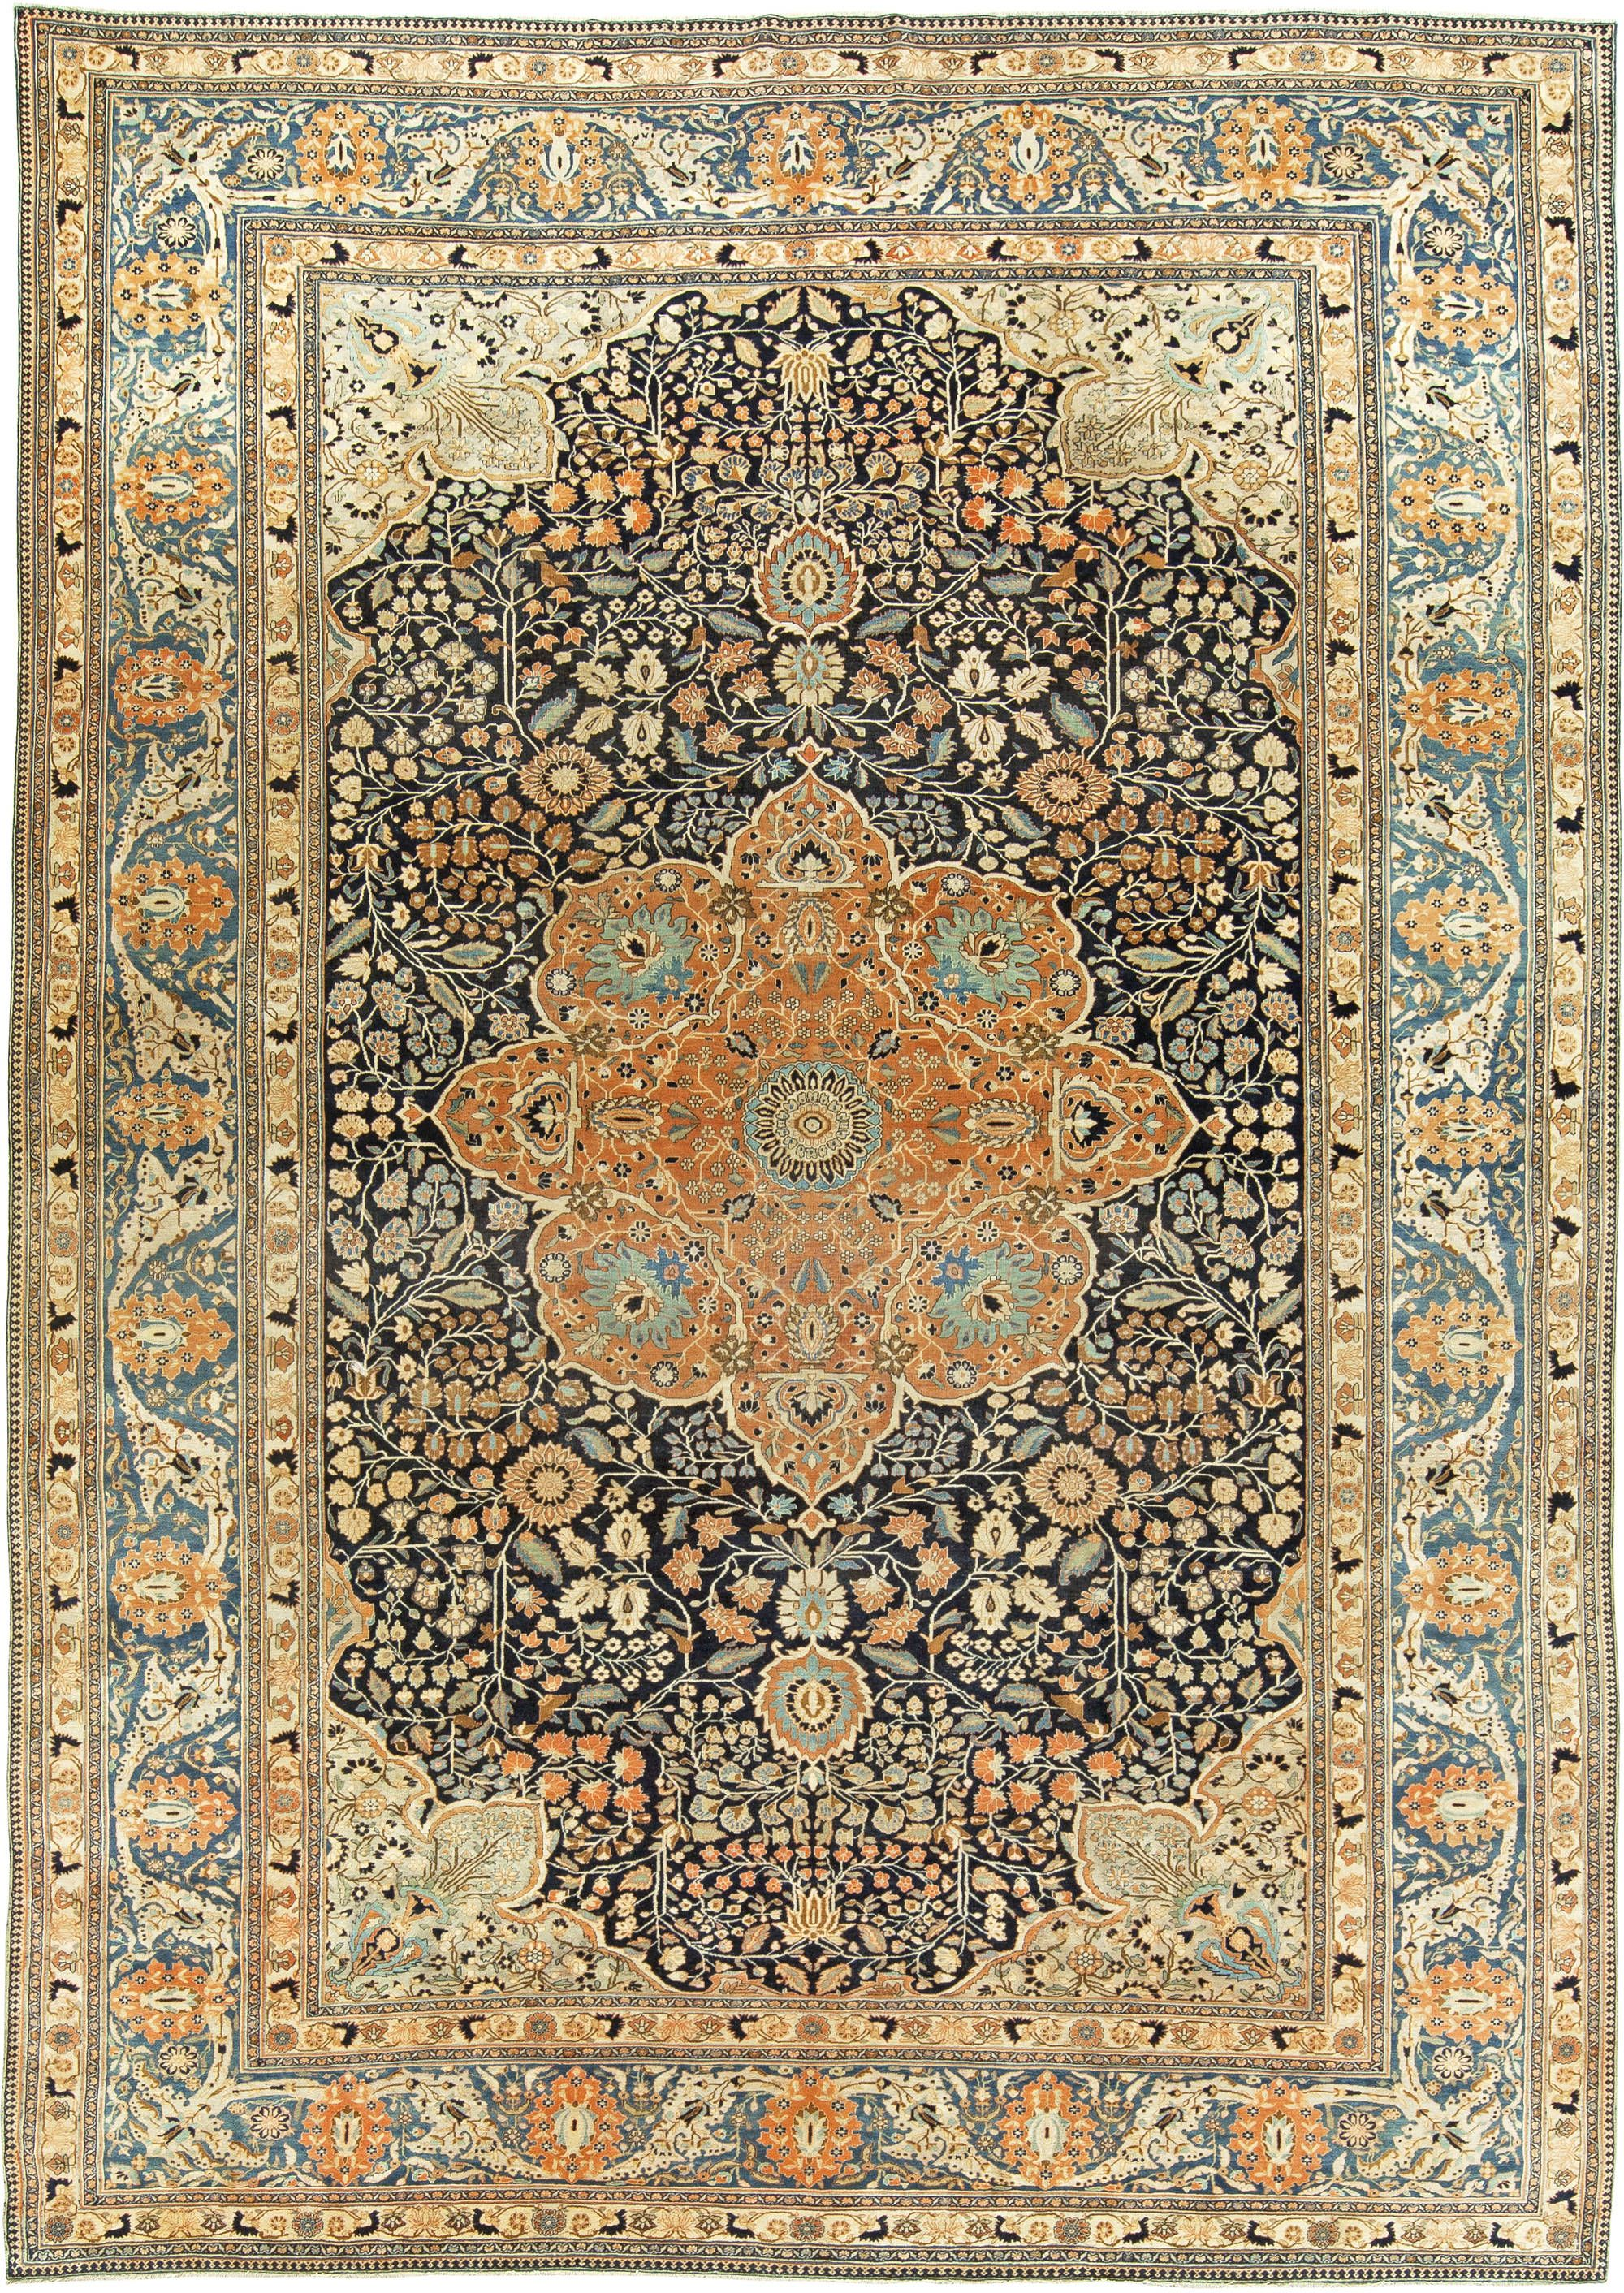 Persian Teppiche Antique Persian Mohtashem Kashan Rug Bb6141 Rug Teppiche